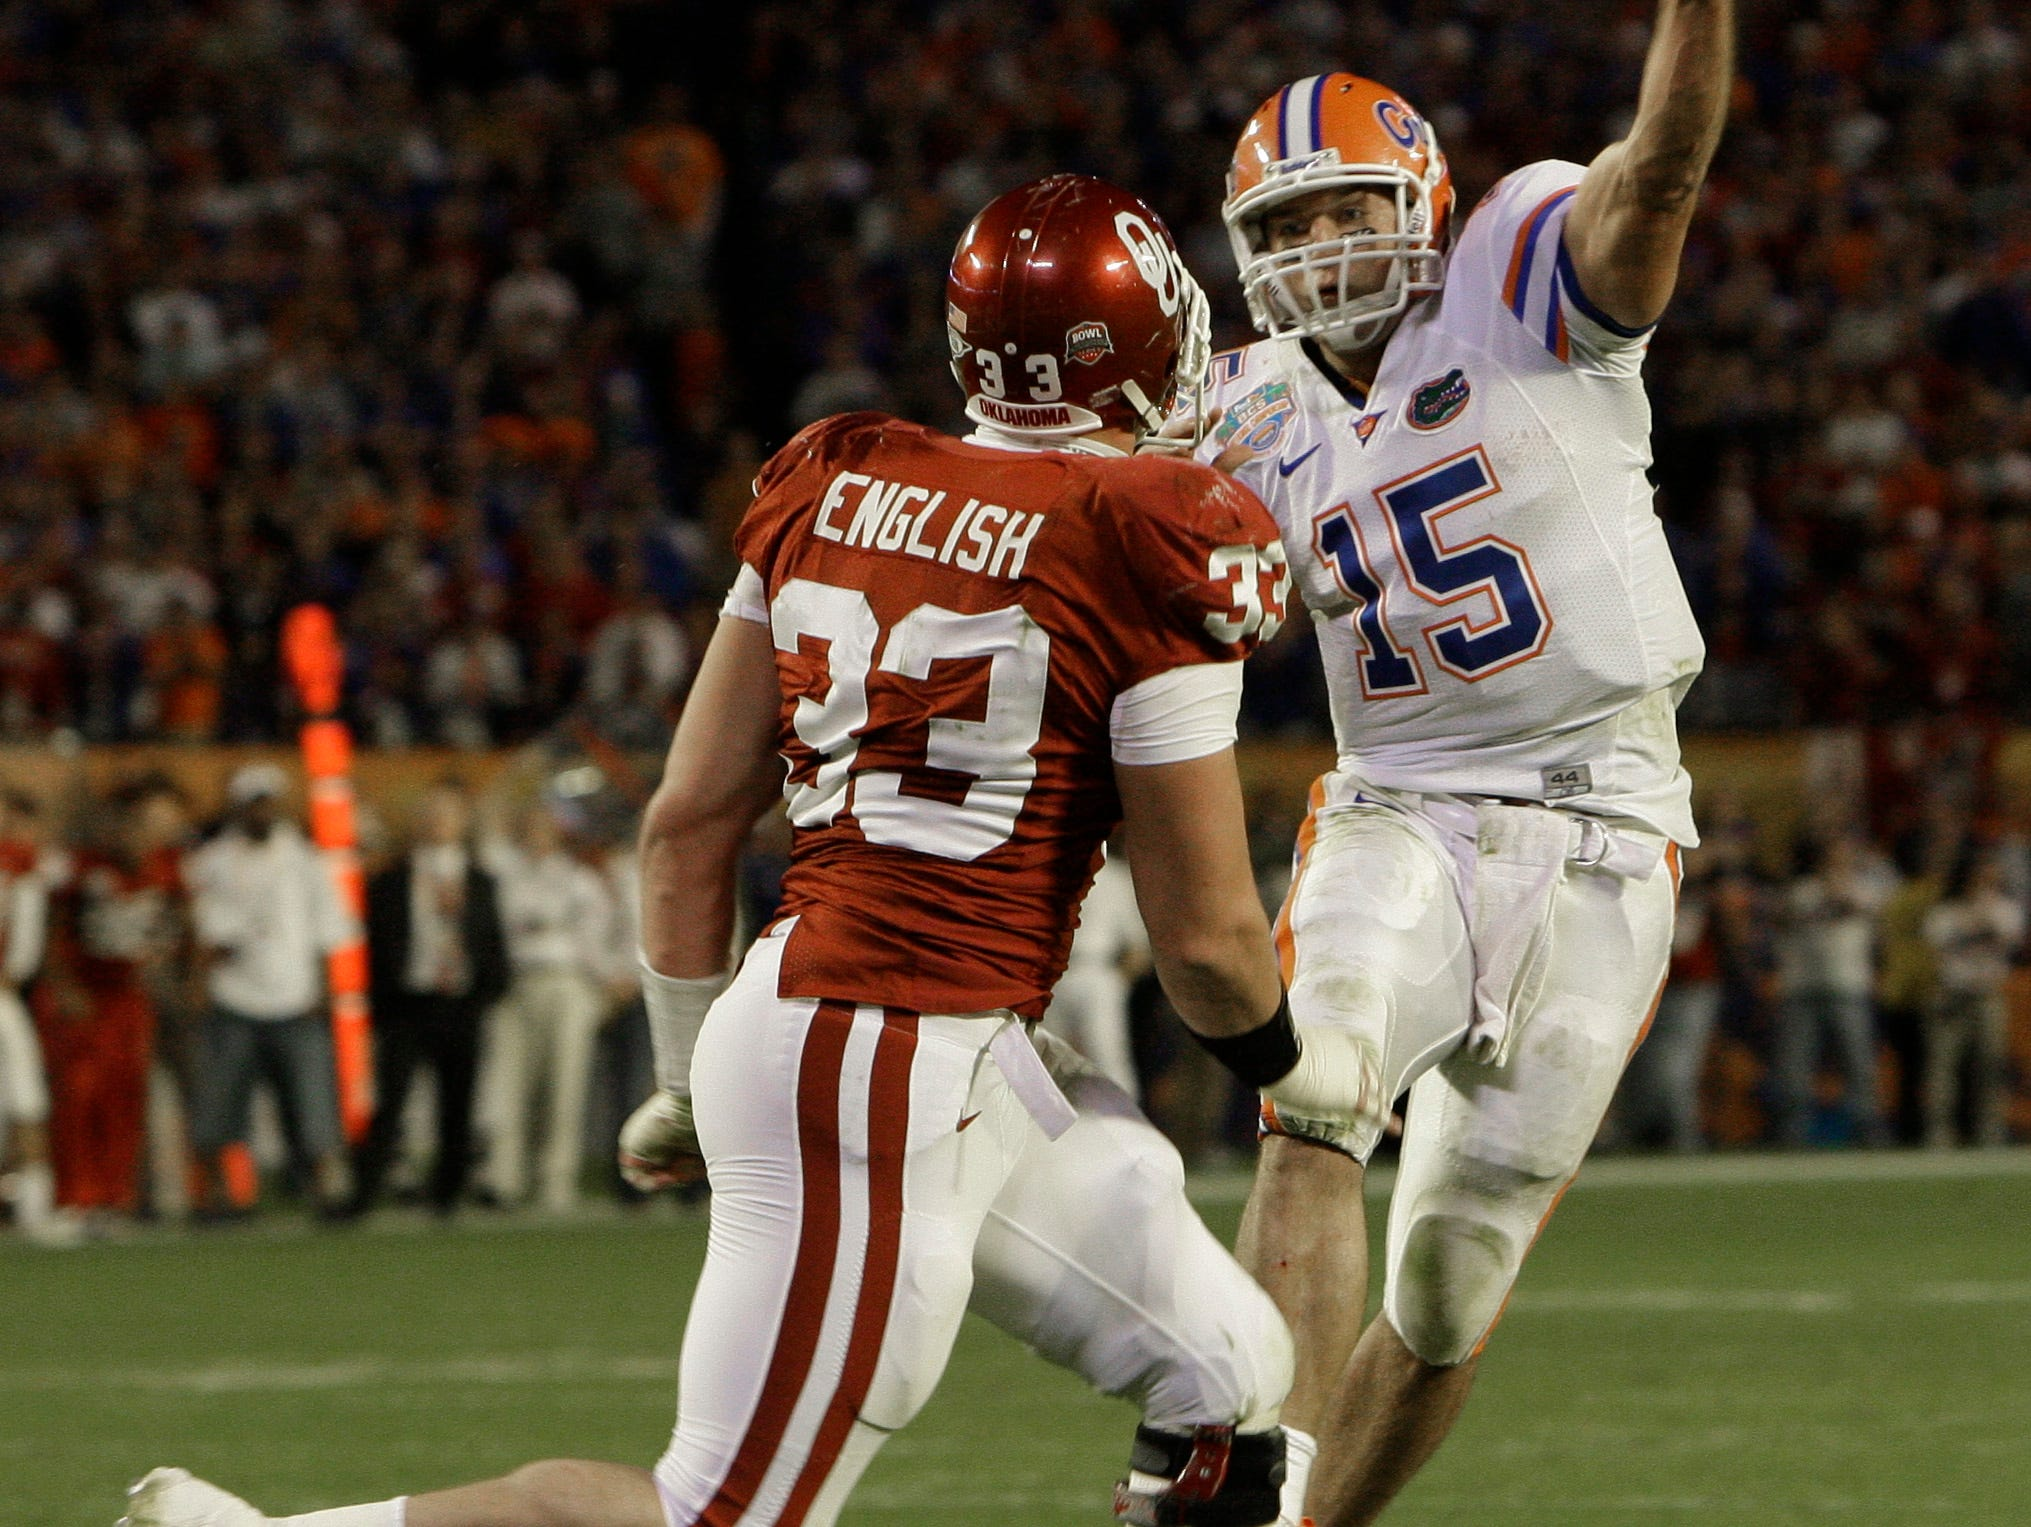 Florida's Tim Tebow (15) throws a pass over Oklahoma's Auston English (33) during the third quarter of the BCS Championship NCAA college football game in Miami, Thursday, Jan. 8, 2009. (AP Photo/Mark Humphrey)